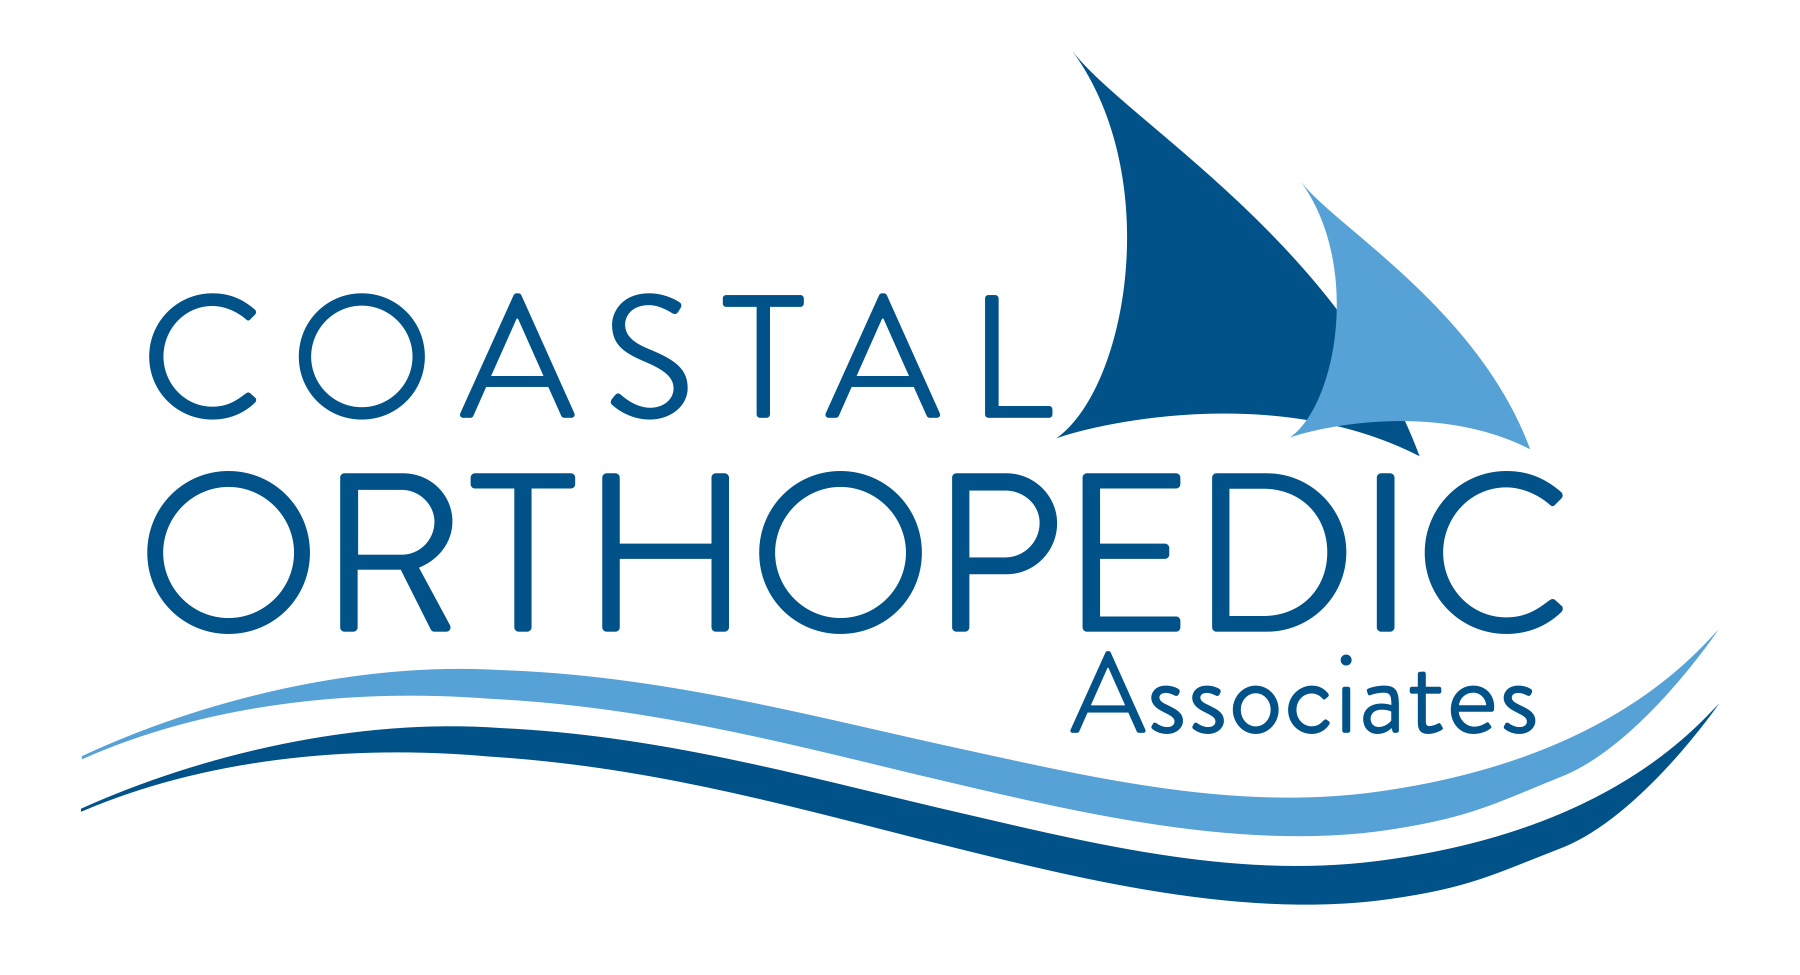 Meet the Physicians at Coastal Orthopedics in Beverly, MA